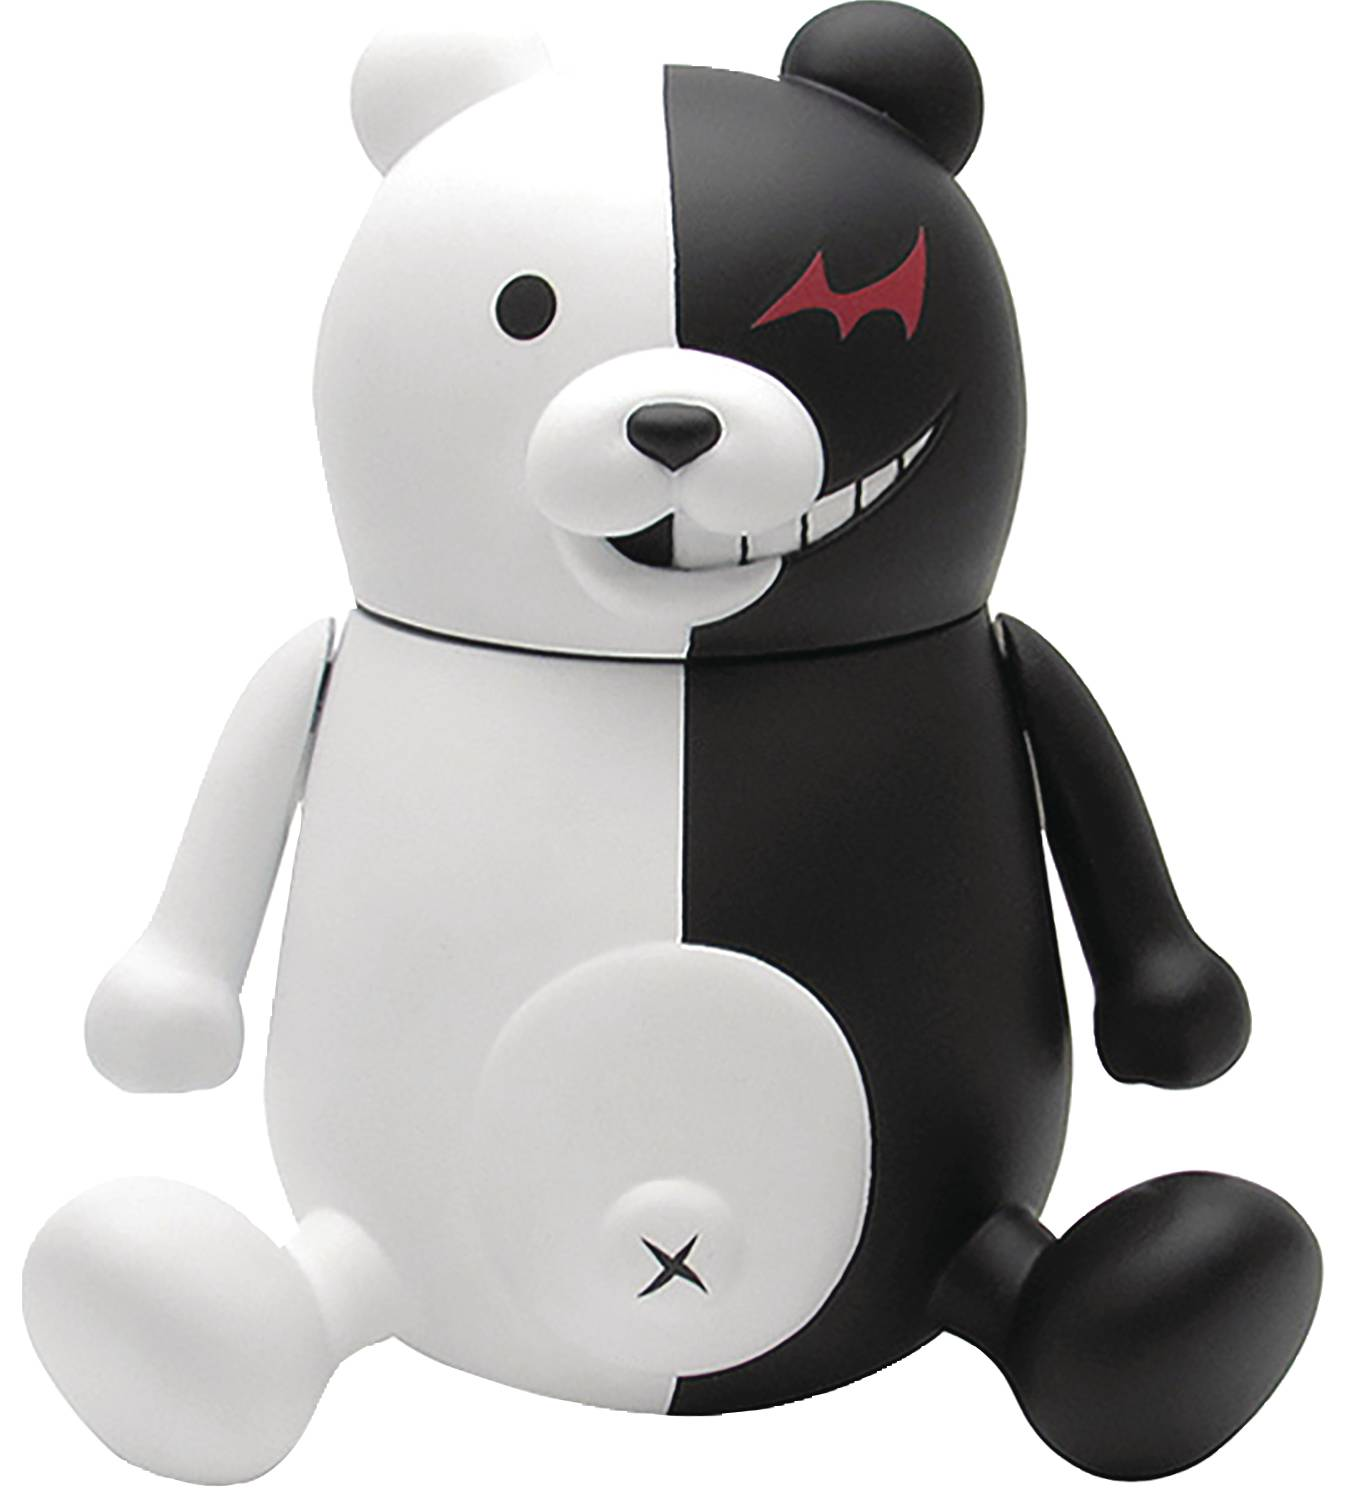 DANGANRONPA 1 2 MONOKUMA SOFT VINYL FIG